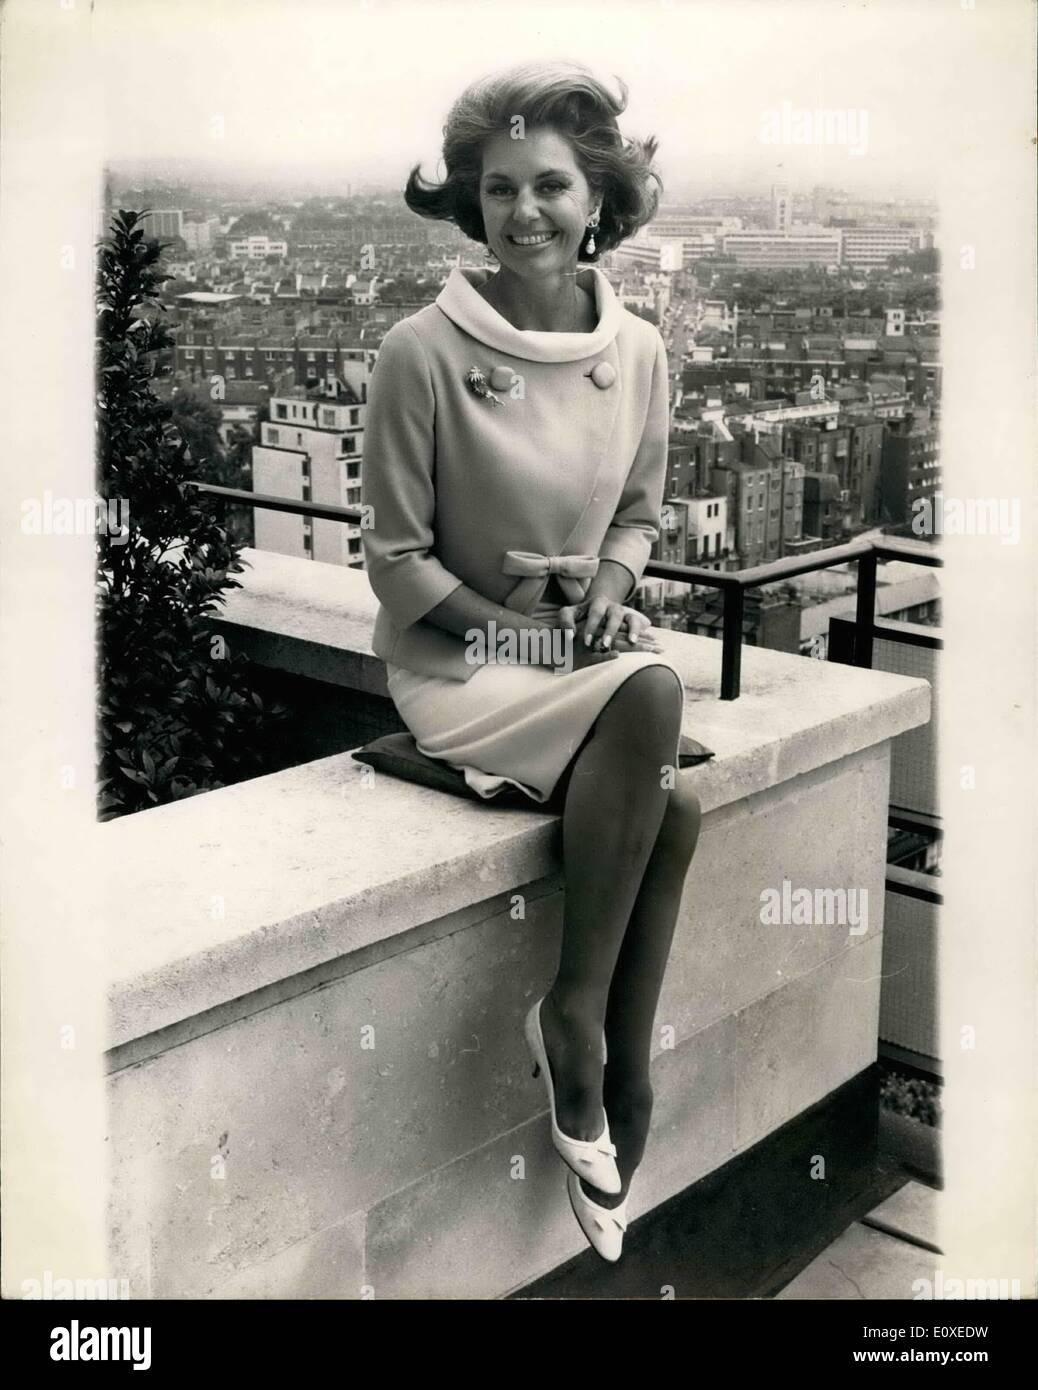 Jul. 07, 1966 - Cyd Charisse in London: Dancer Cyd Charisse and wife of singer Tony Martin, arrived in London yesterday from Hollywood to star in the film Maroc 7 by Rank, She will play the Editor of a Fashion Magazine - a job she sees as cover for her activities as an international jewel thief. Also starting in the film is Game Barry, of ''Burke's Law'' fame, who plays the undercover agent whose job is to expose her, Leslis Phillips and John Gale. She will be in London for a week and then flies of to Mar ware part of the film is being shot - Stock Image